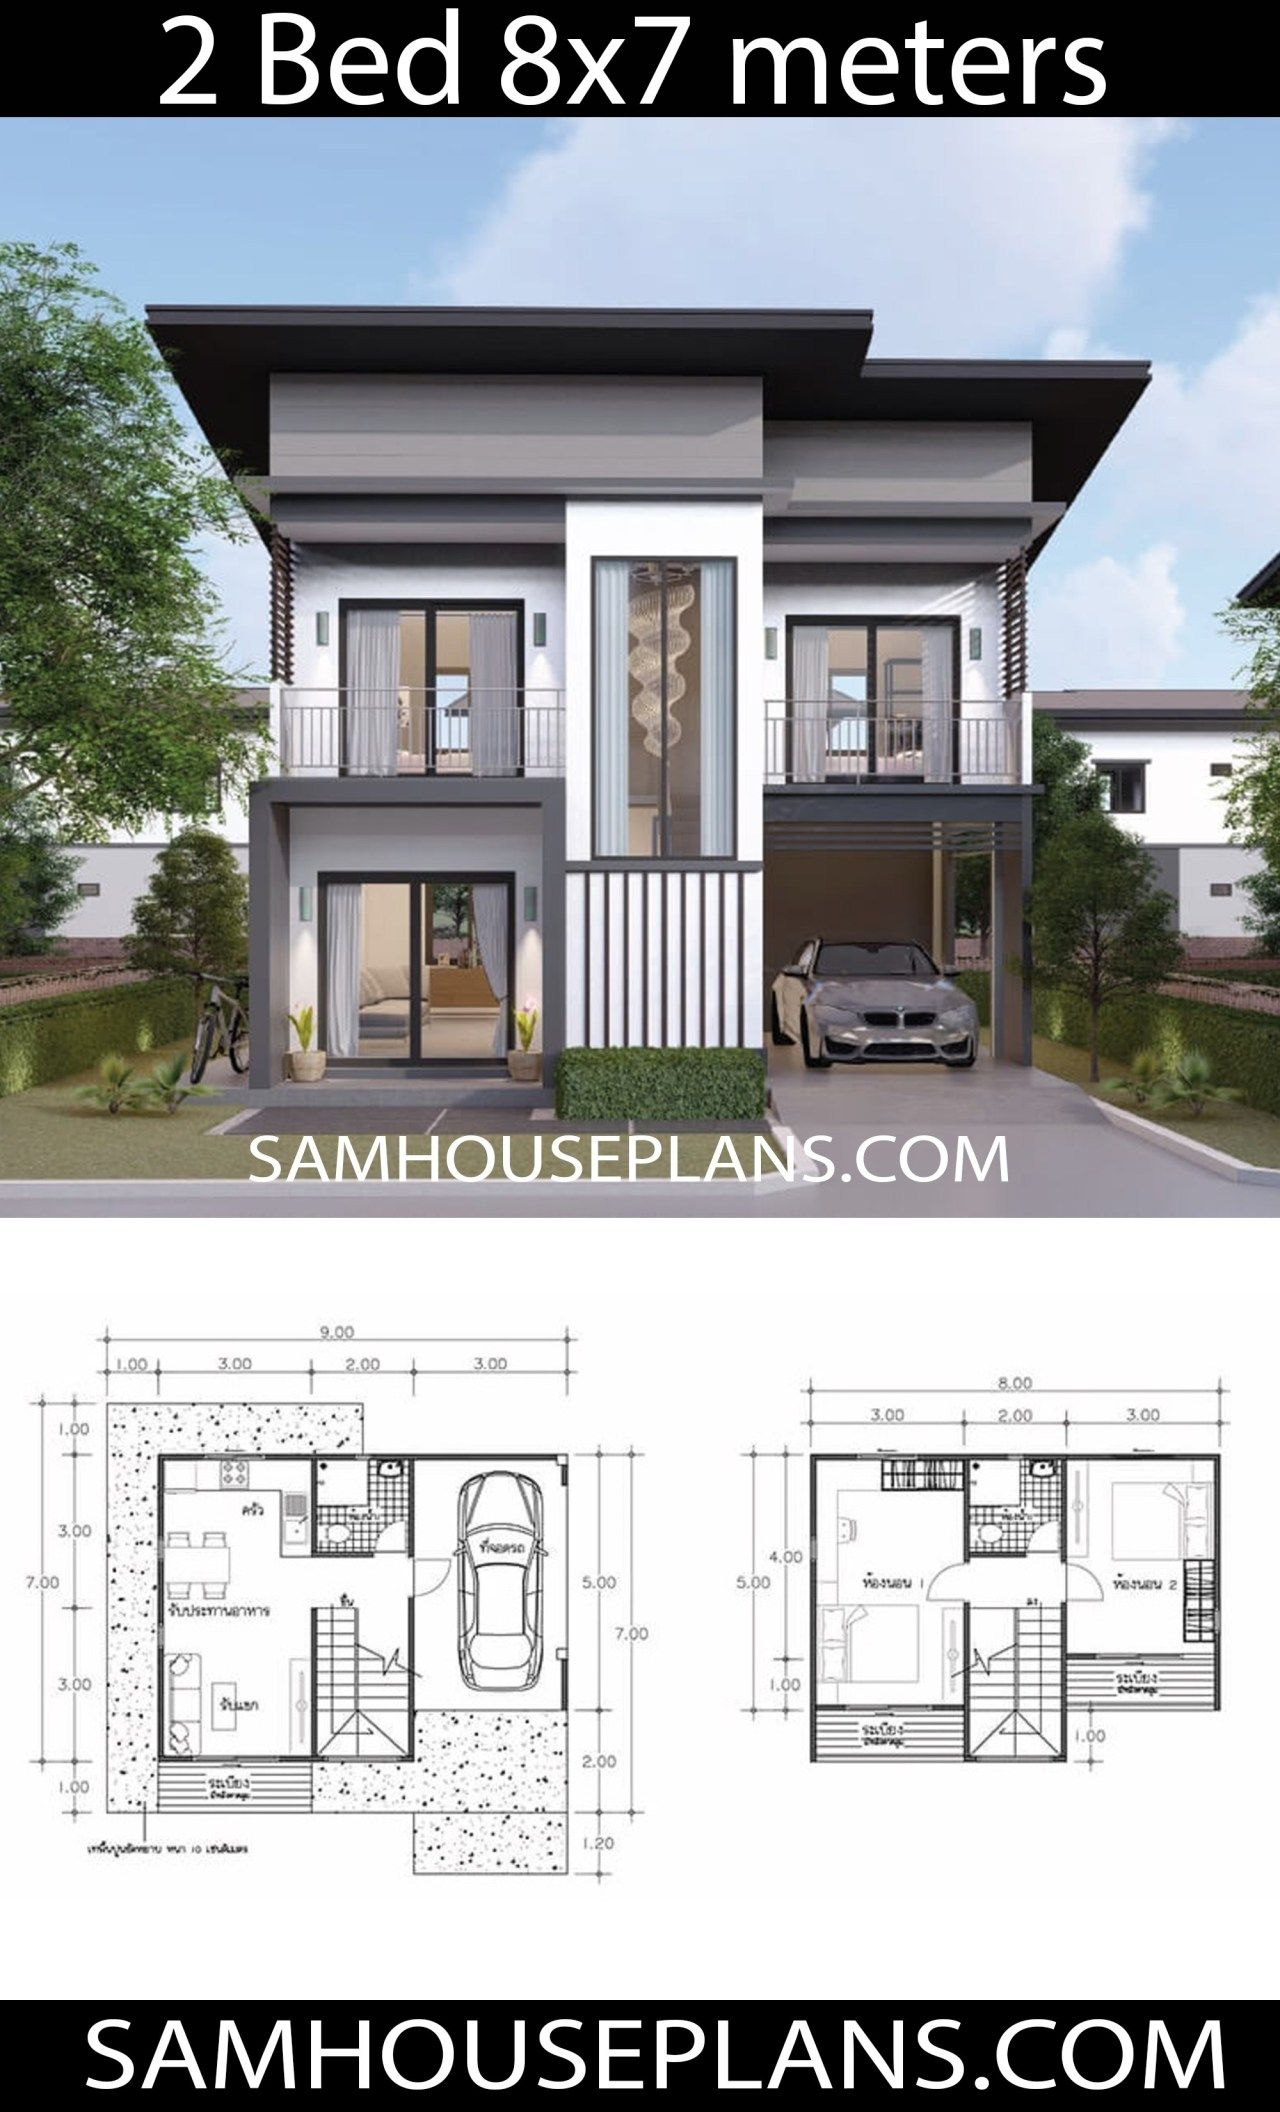 House Plans Idea 8x7 With 2 Bedrooms Sam House Plans House Plan Gallery House Designs Exterior House Construction Plan